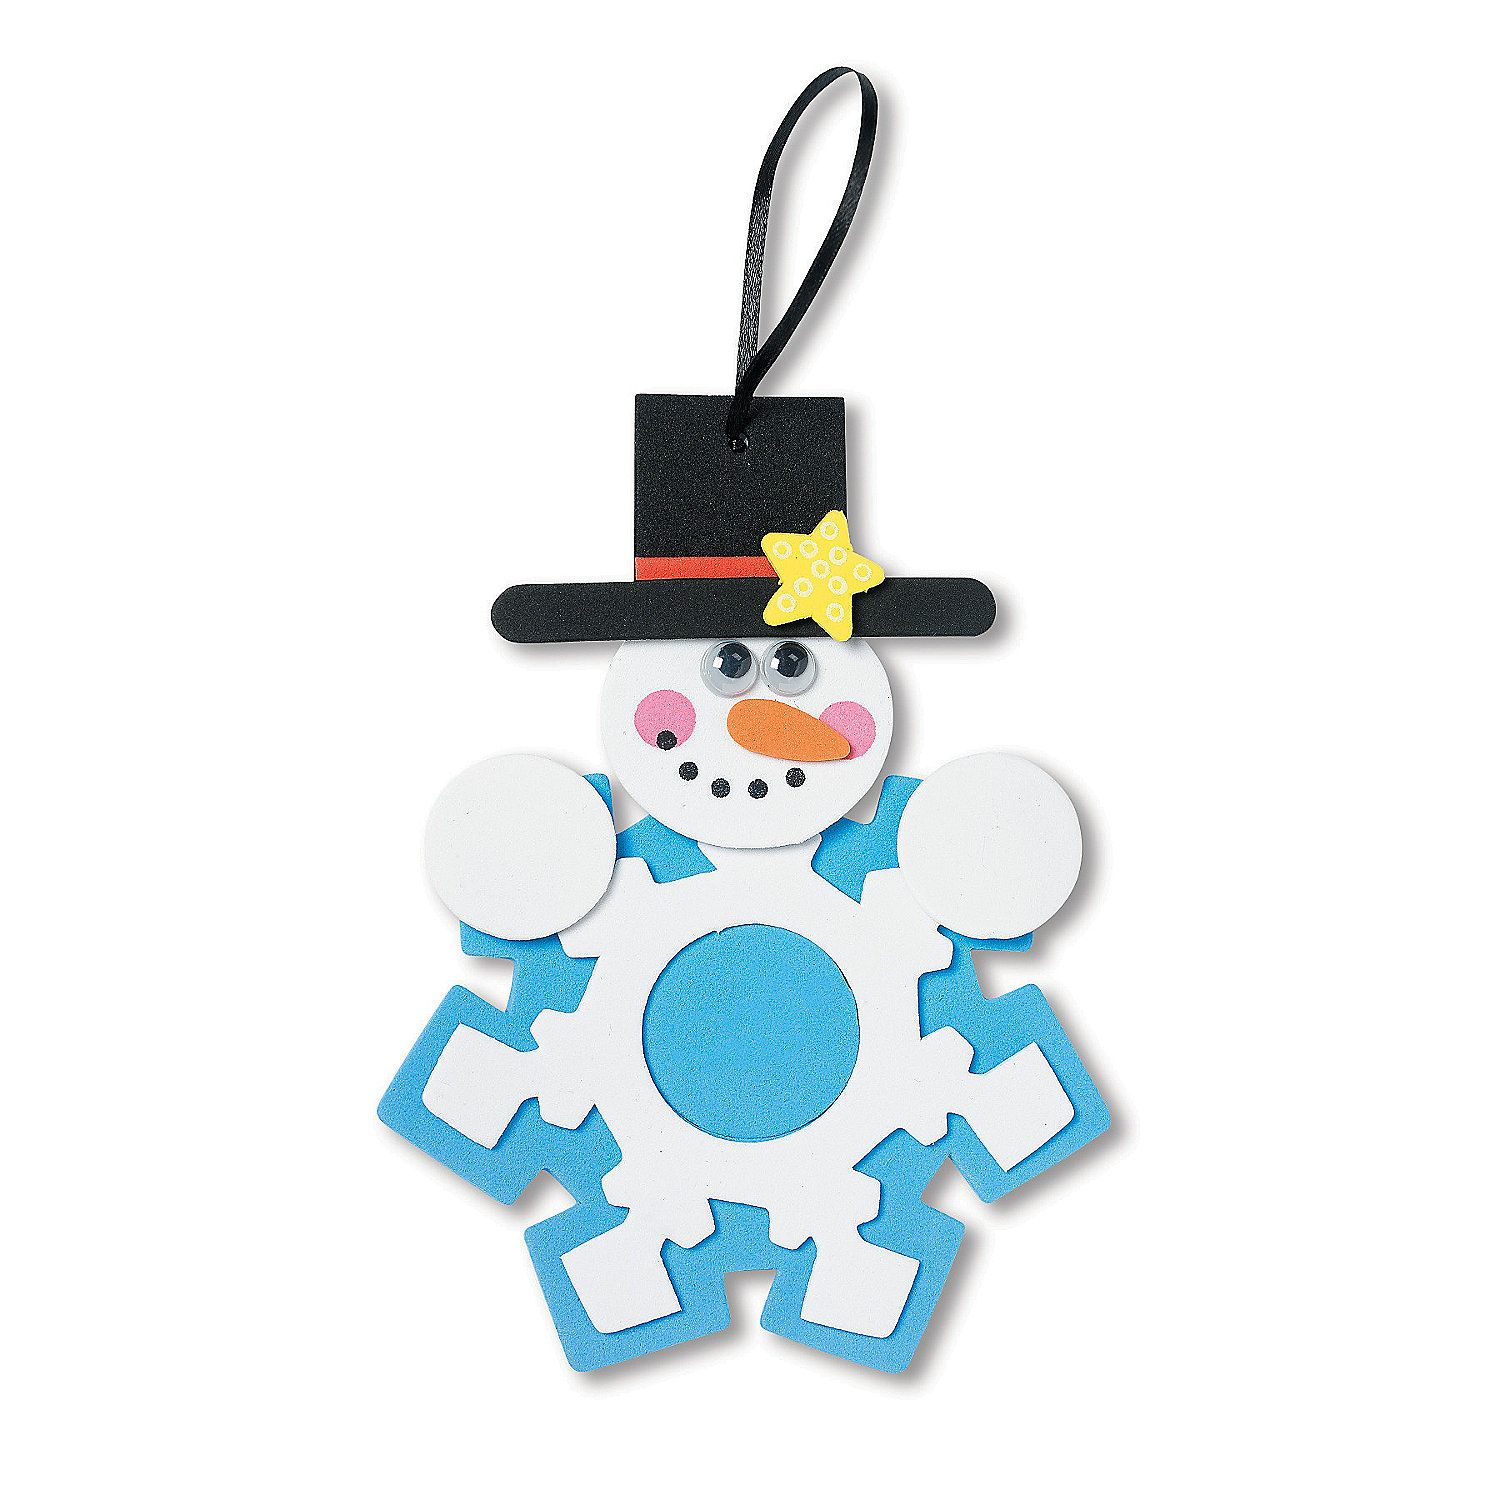 Snowman Snowflake Picture Frame Christmas Ornament Craft Kit Oriental Trading In 2021 Picture Frame Christmas Ornaments Christmas Ornament Crafts Ornament Crafts